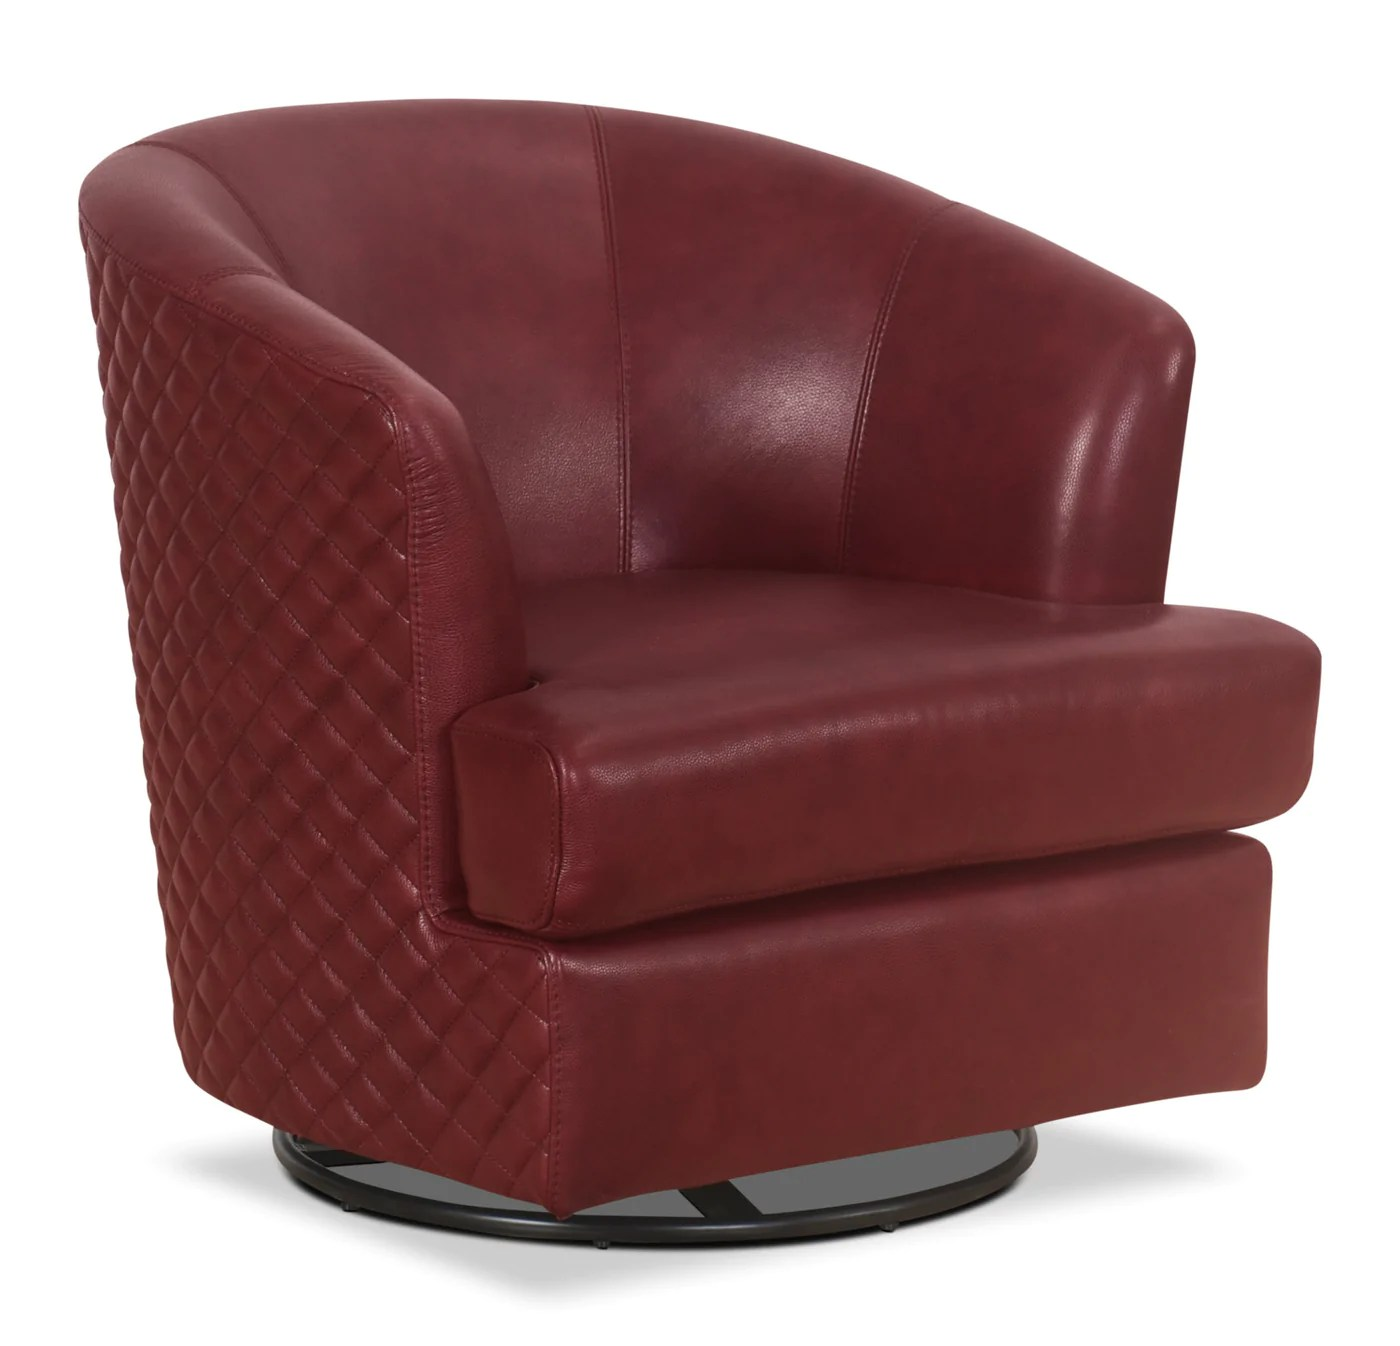 Red Leather Swivel Chair Leola 100 Genuine Leather Accent Swivel Chair Red